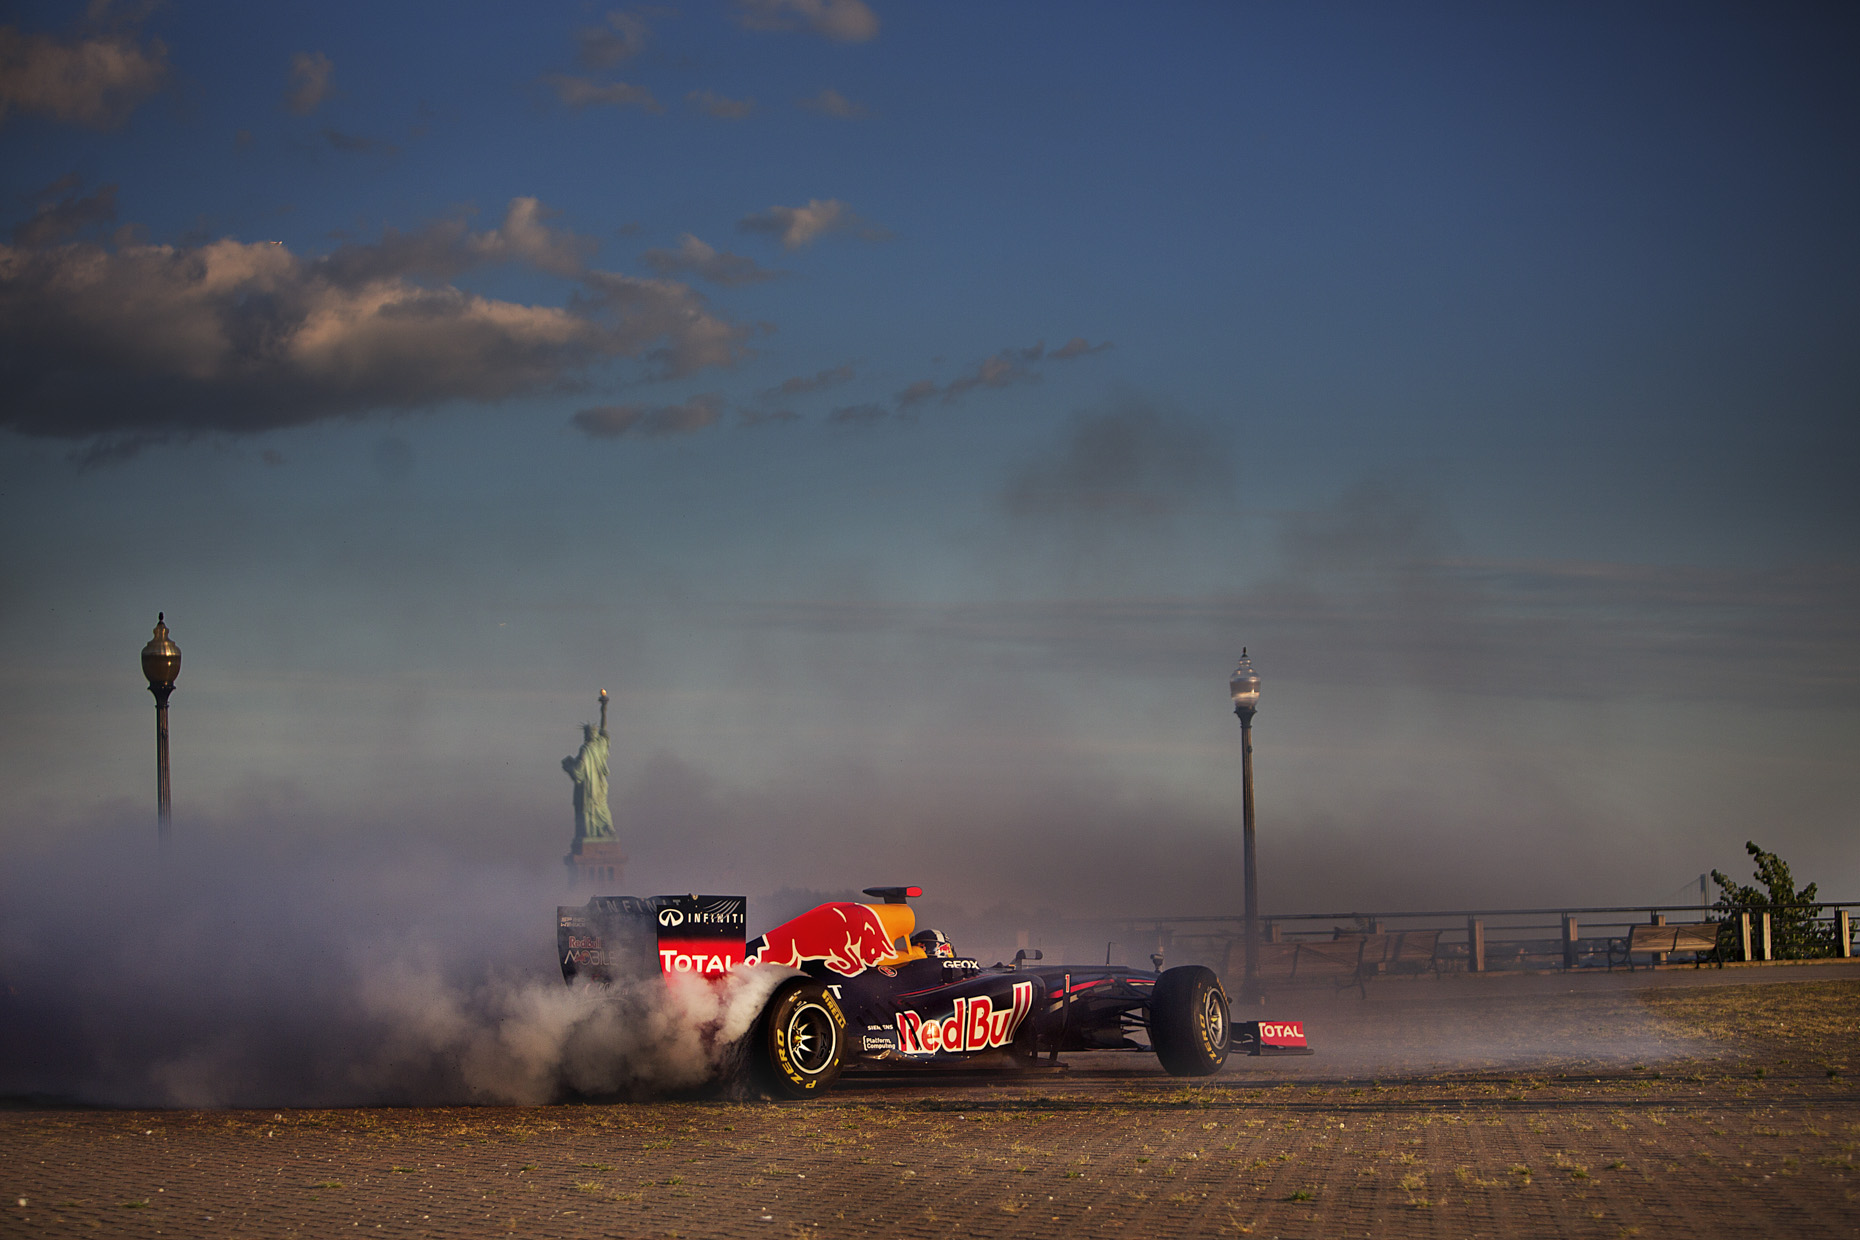 F1 New York City for Red Bull by Boston based commercial sports photographer Brian Nevins